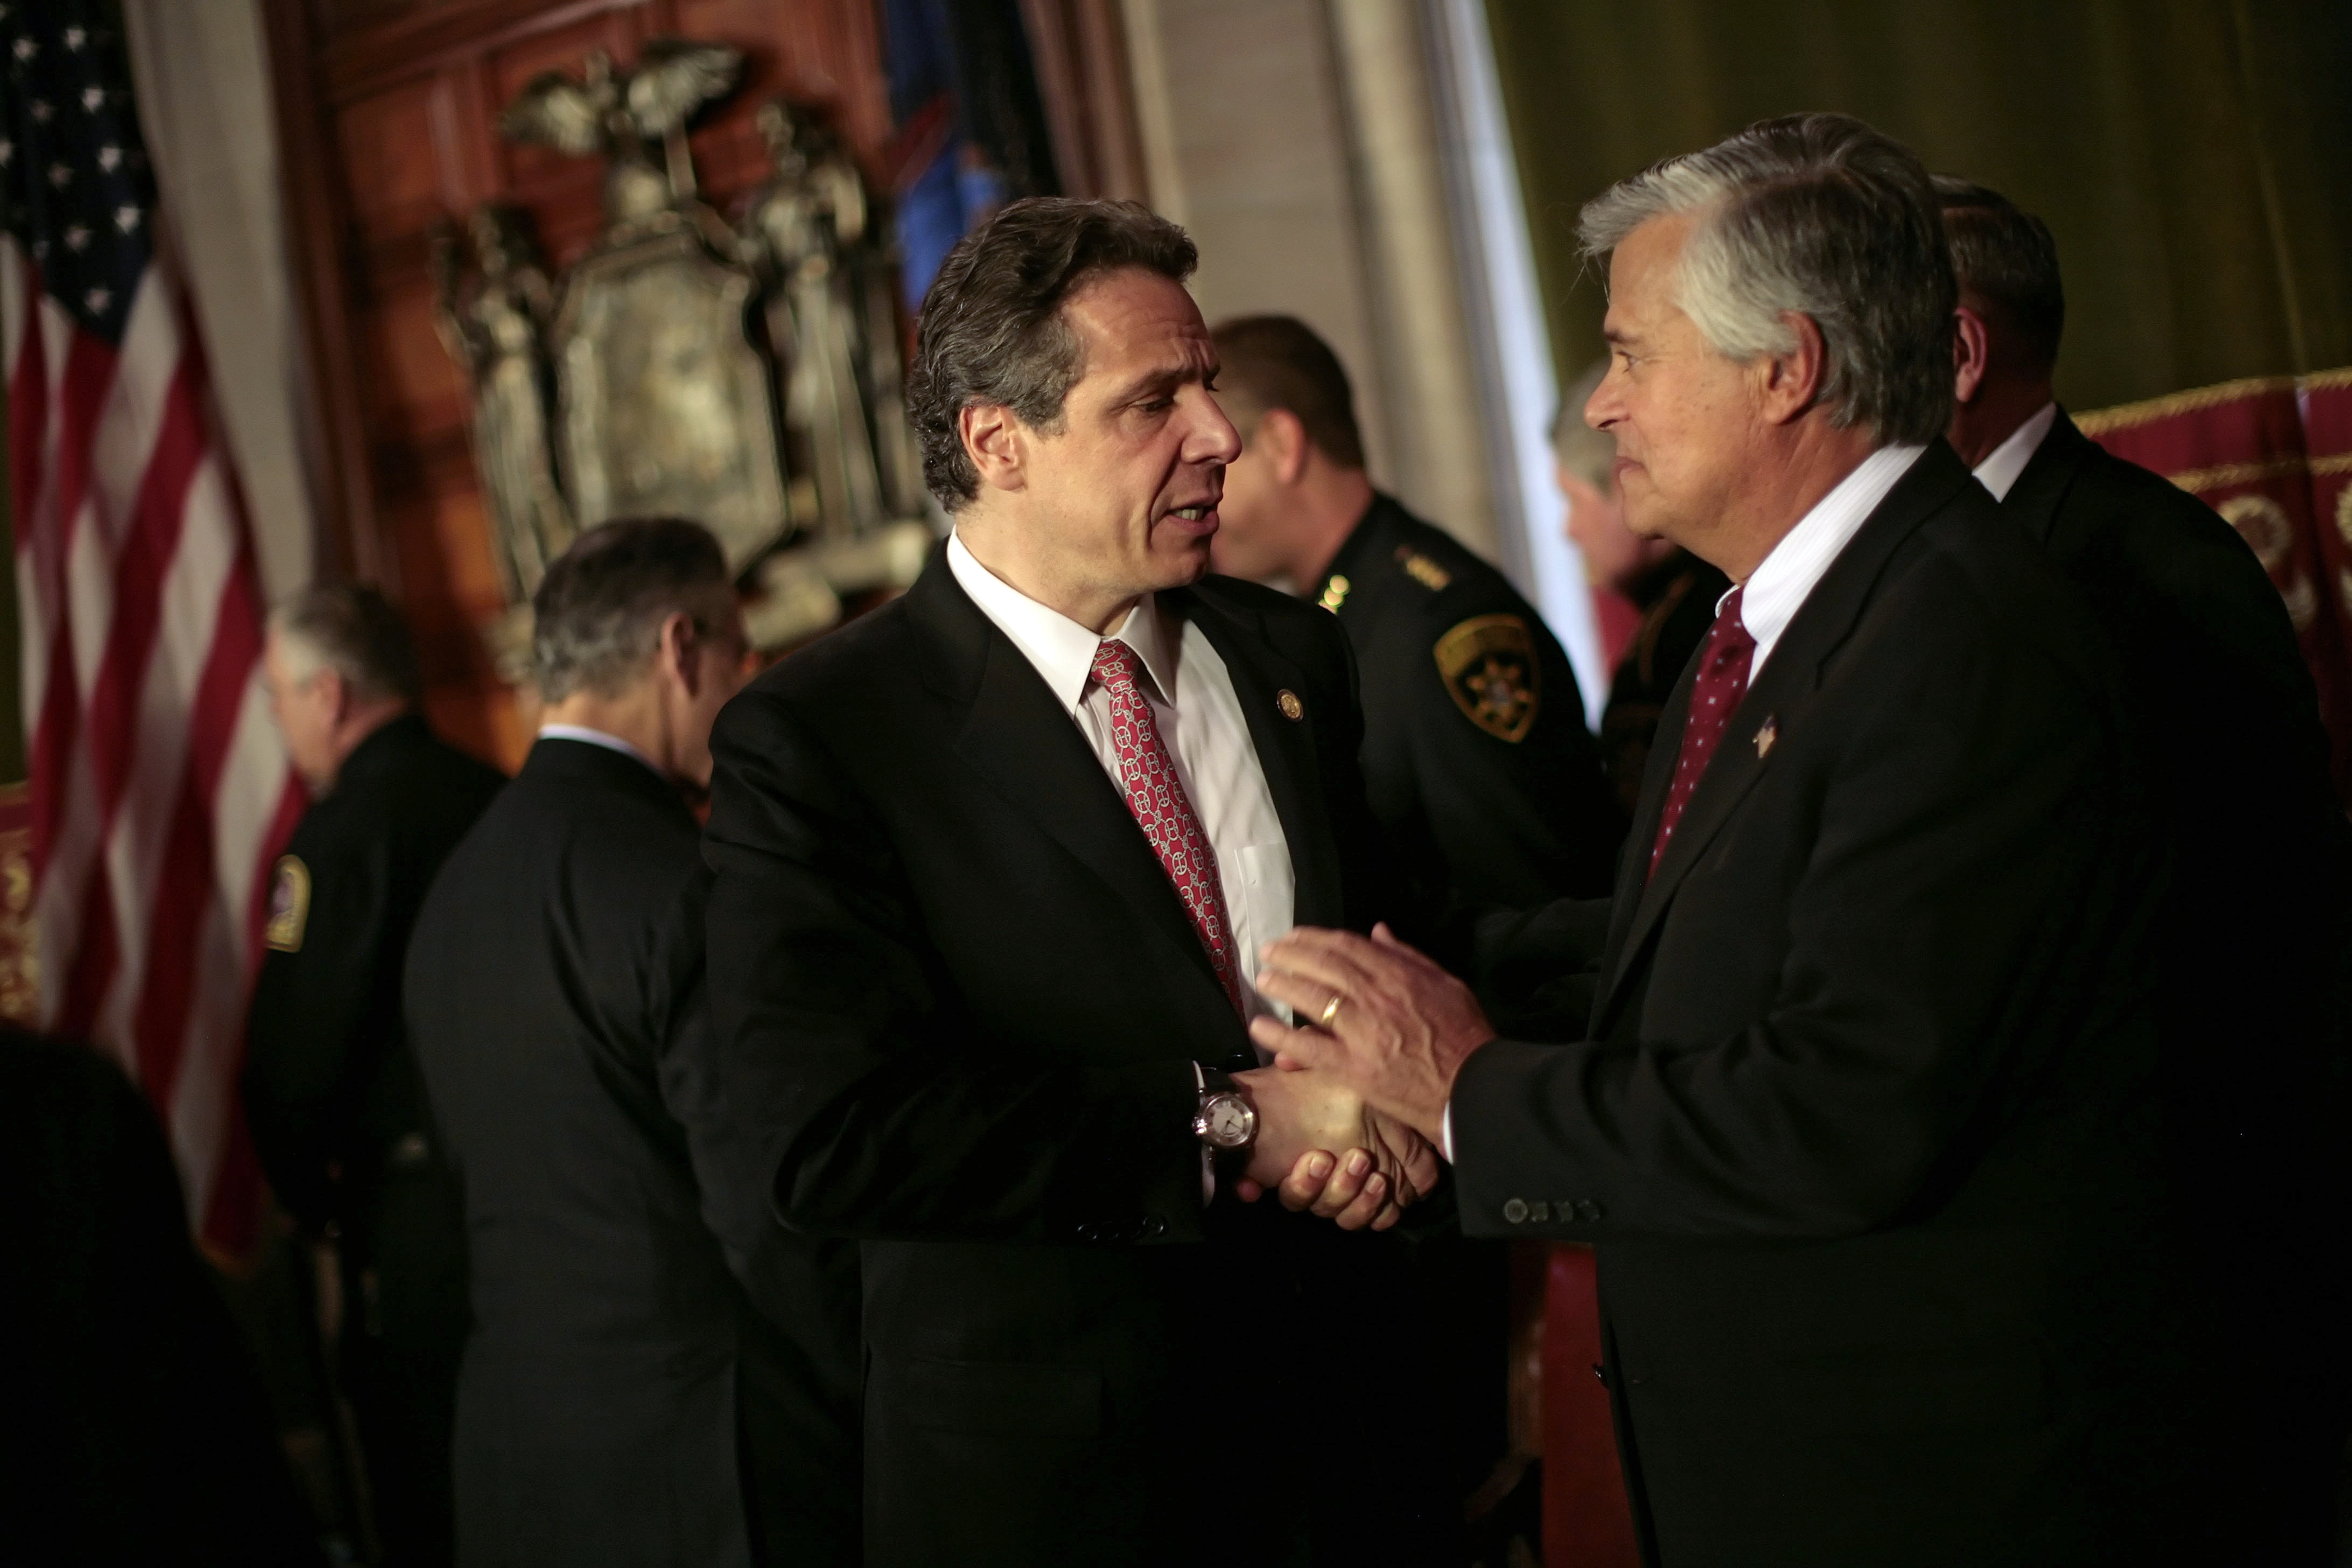 State Senate Majority Leader Dean Skelos, shown here at right with Gov. Andrew Cuomo in 2012, says no one from the U.S. Attorney's Office has contacted him.